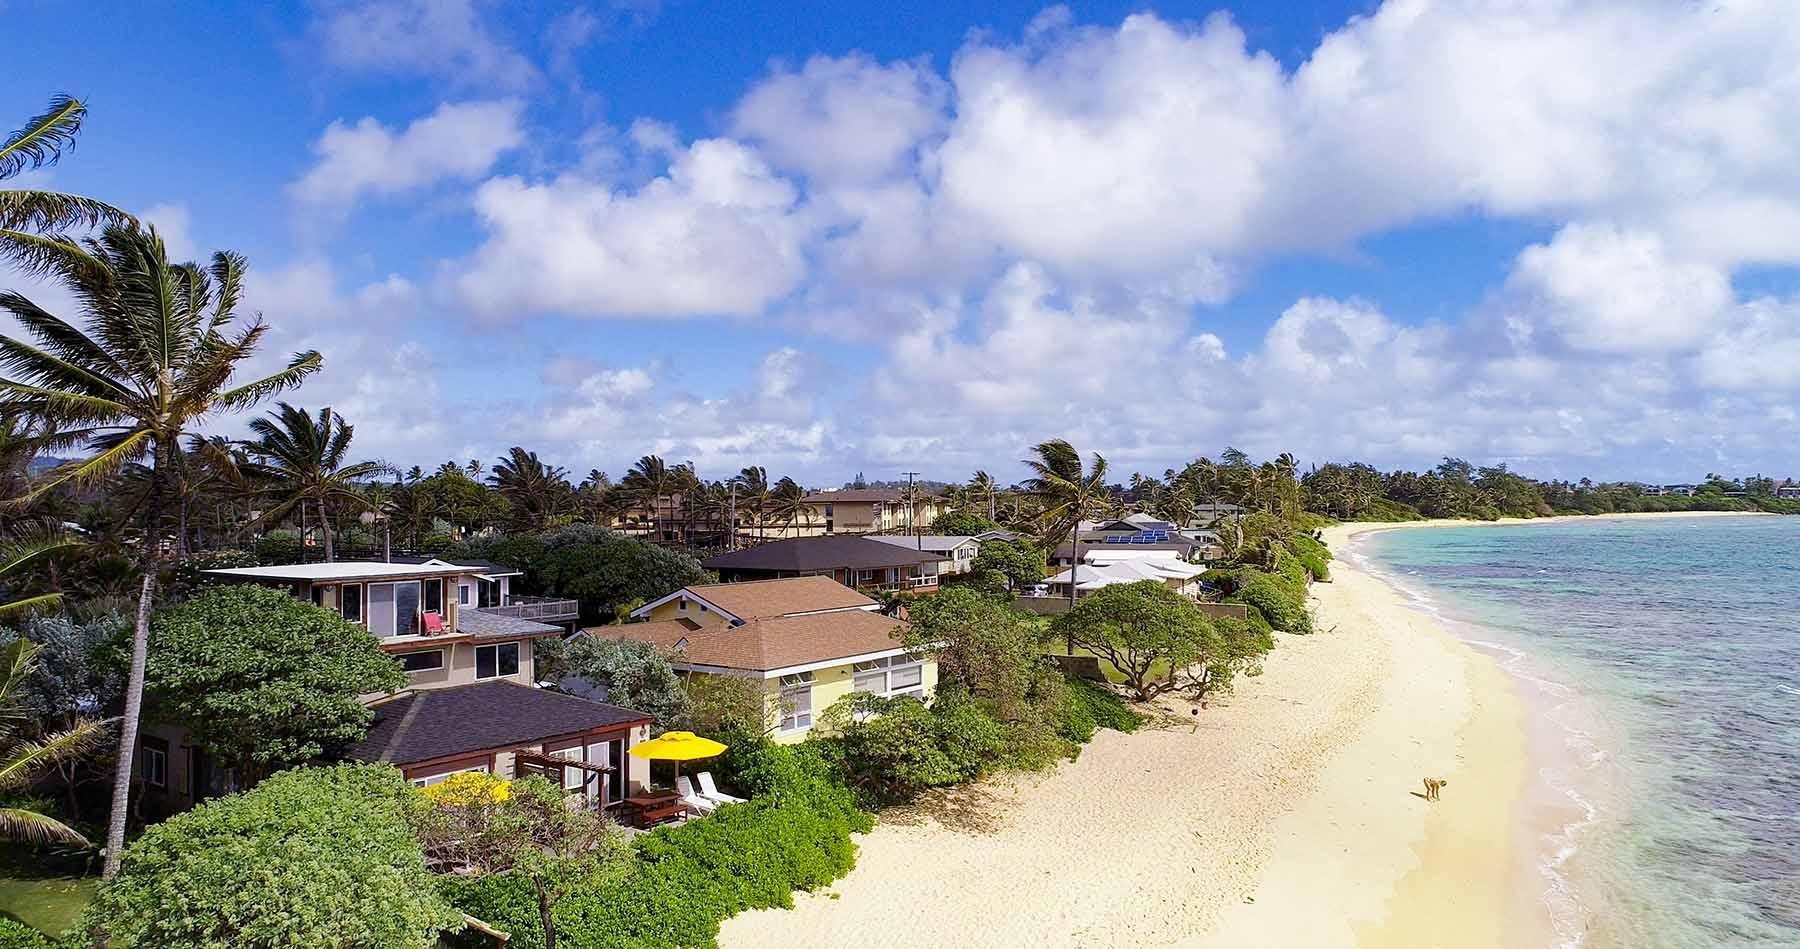 Our beachfront area only is 100 steps from back door of Papaya.